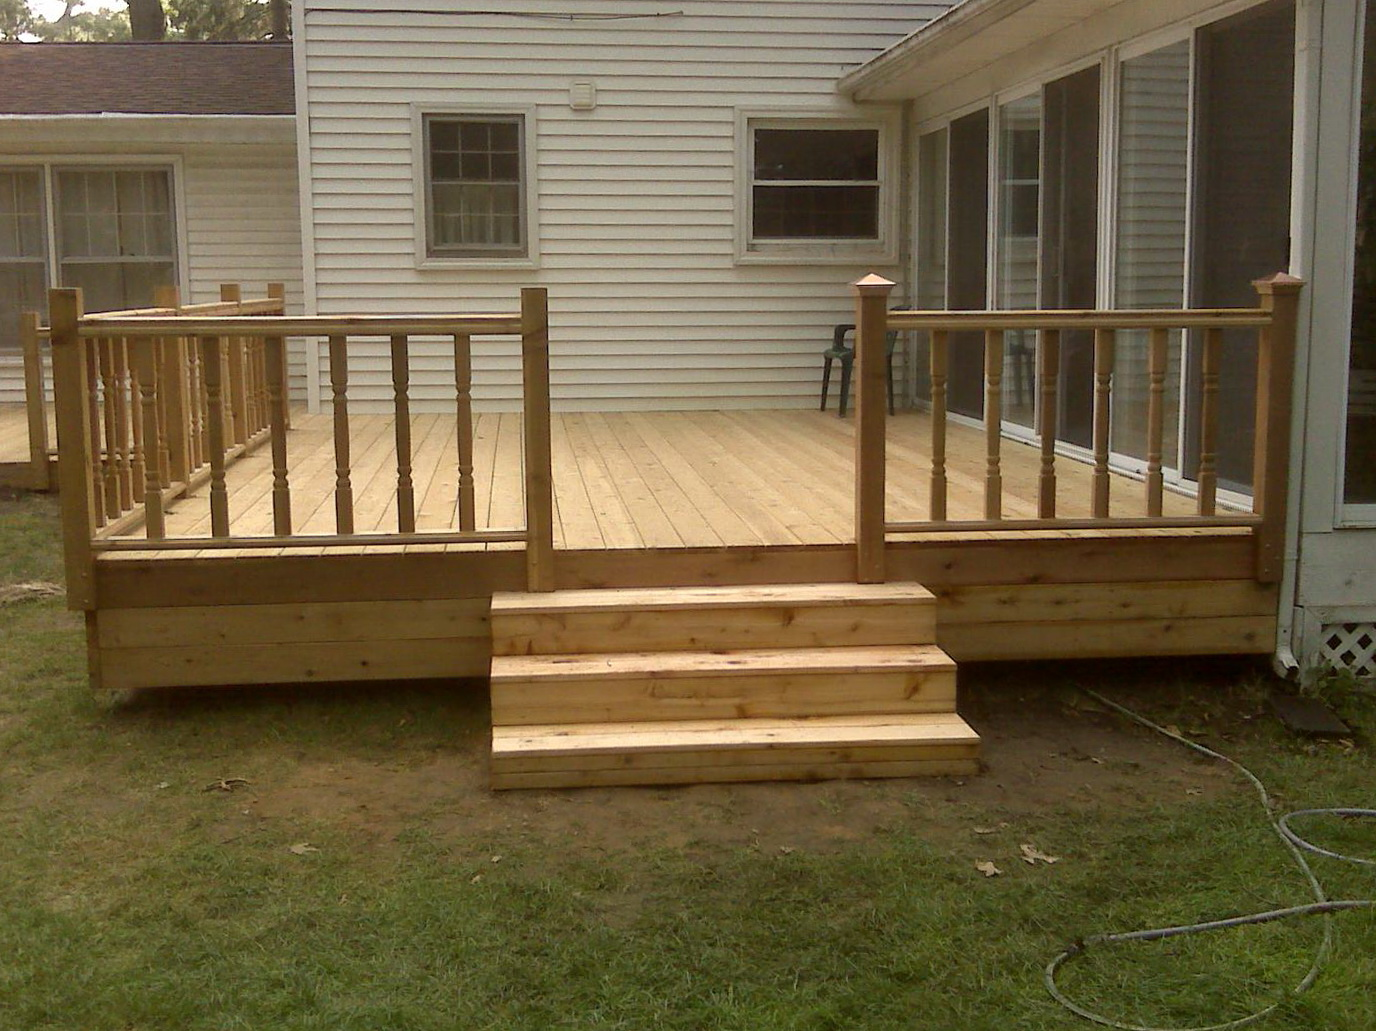 Simple Wood Deck Designs | Home Design Ideas on Wood Patio Ideas id=86711